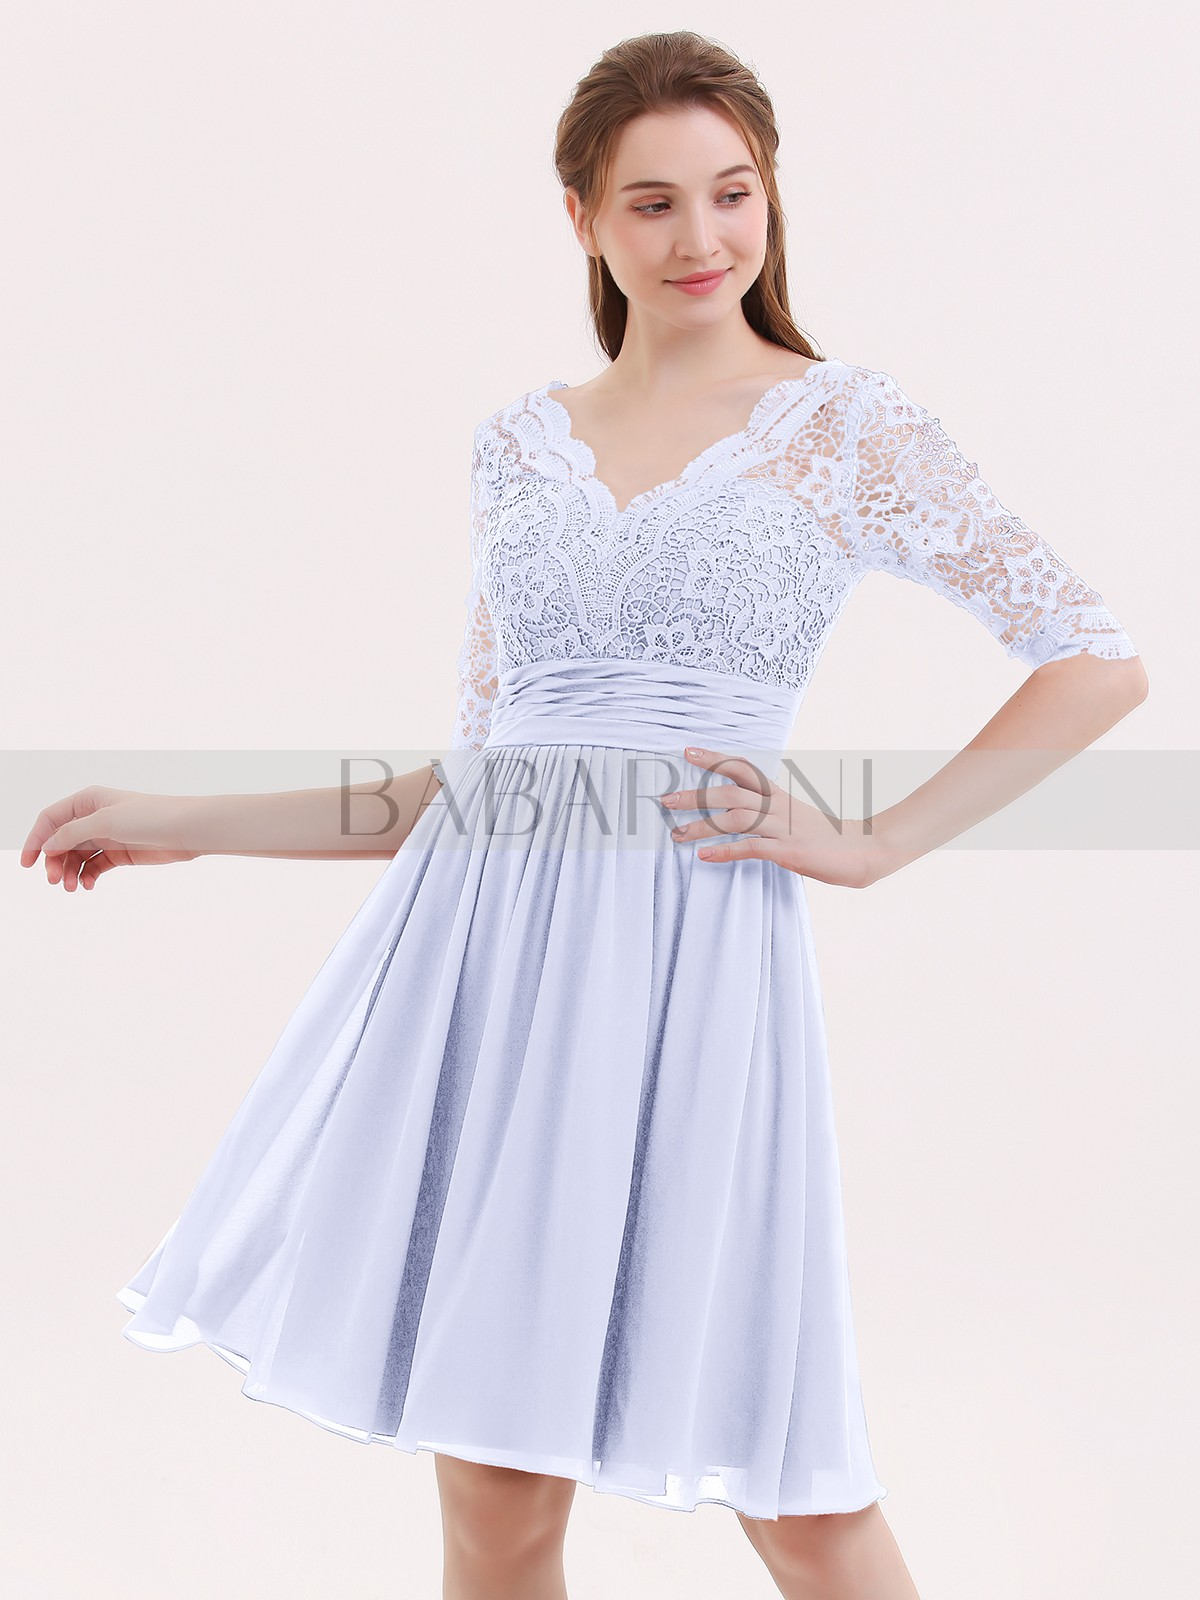 290acb6ee1fc Lavender Alexia Lace and Chiffon Short Dress with Half Sleeves ...